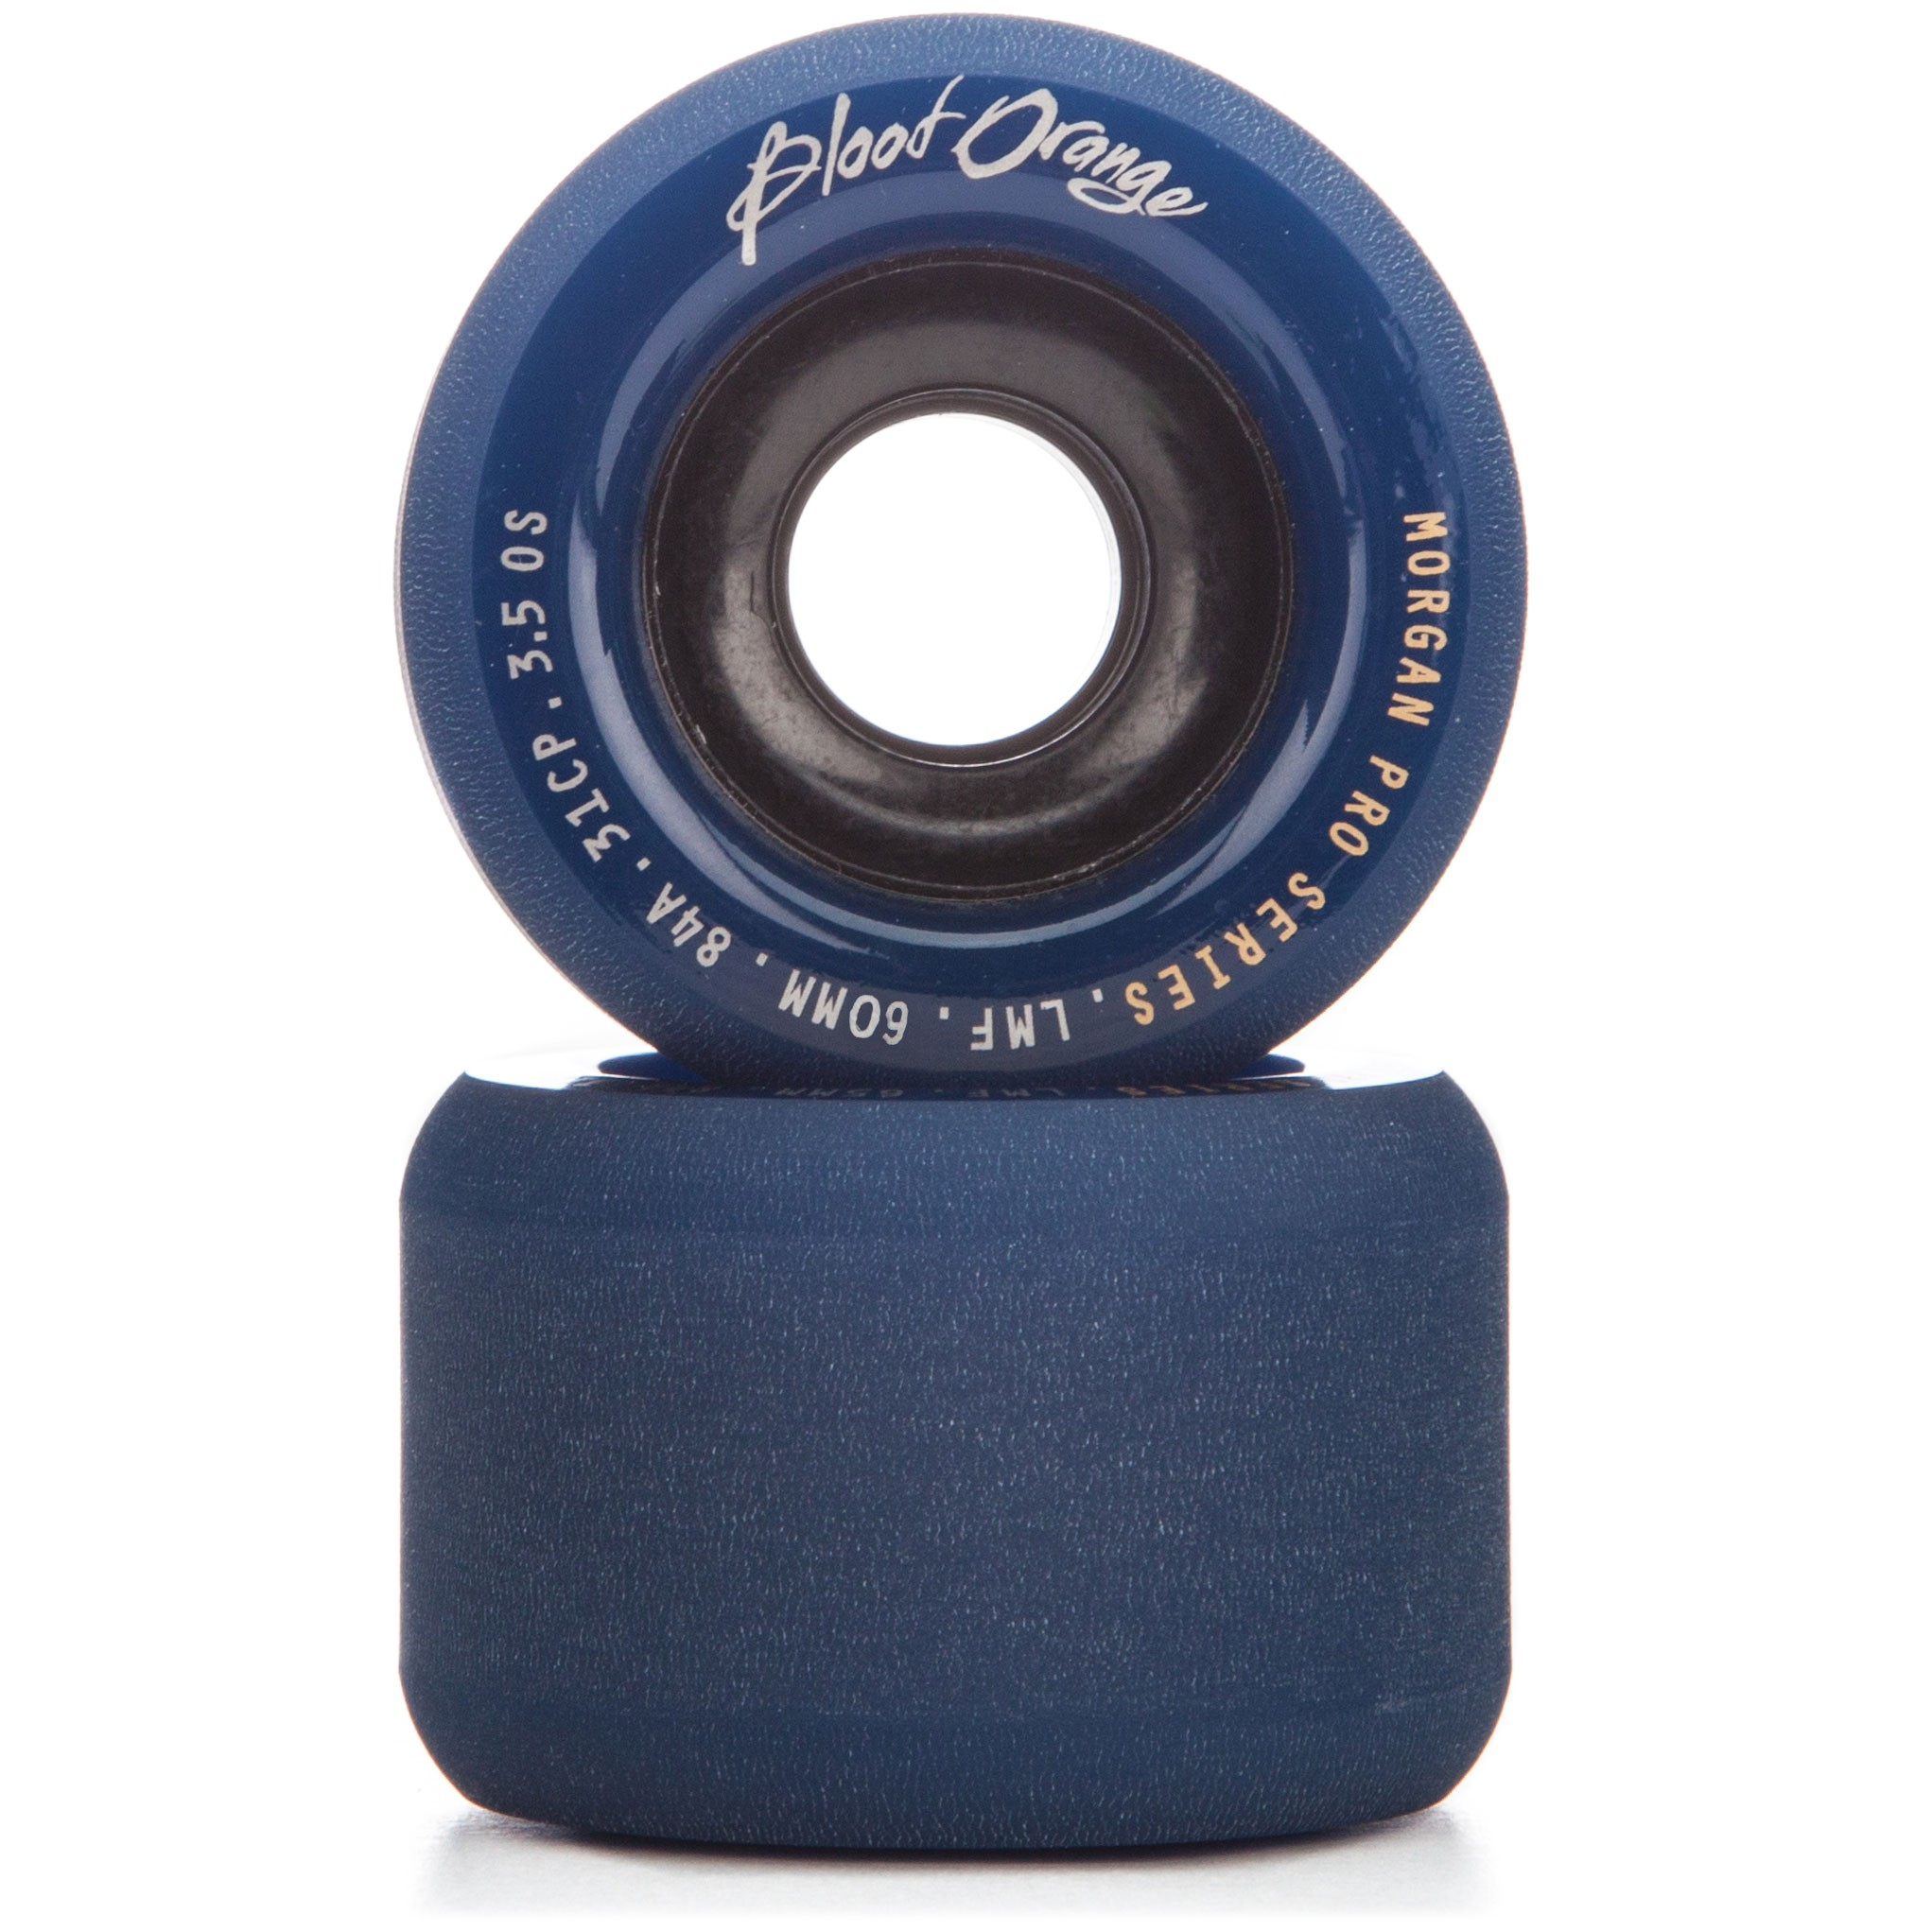 Blood Orange Liam Morgan Formula Longboard Wheels 60mm